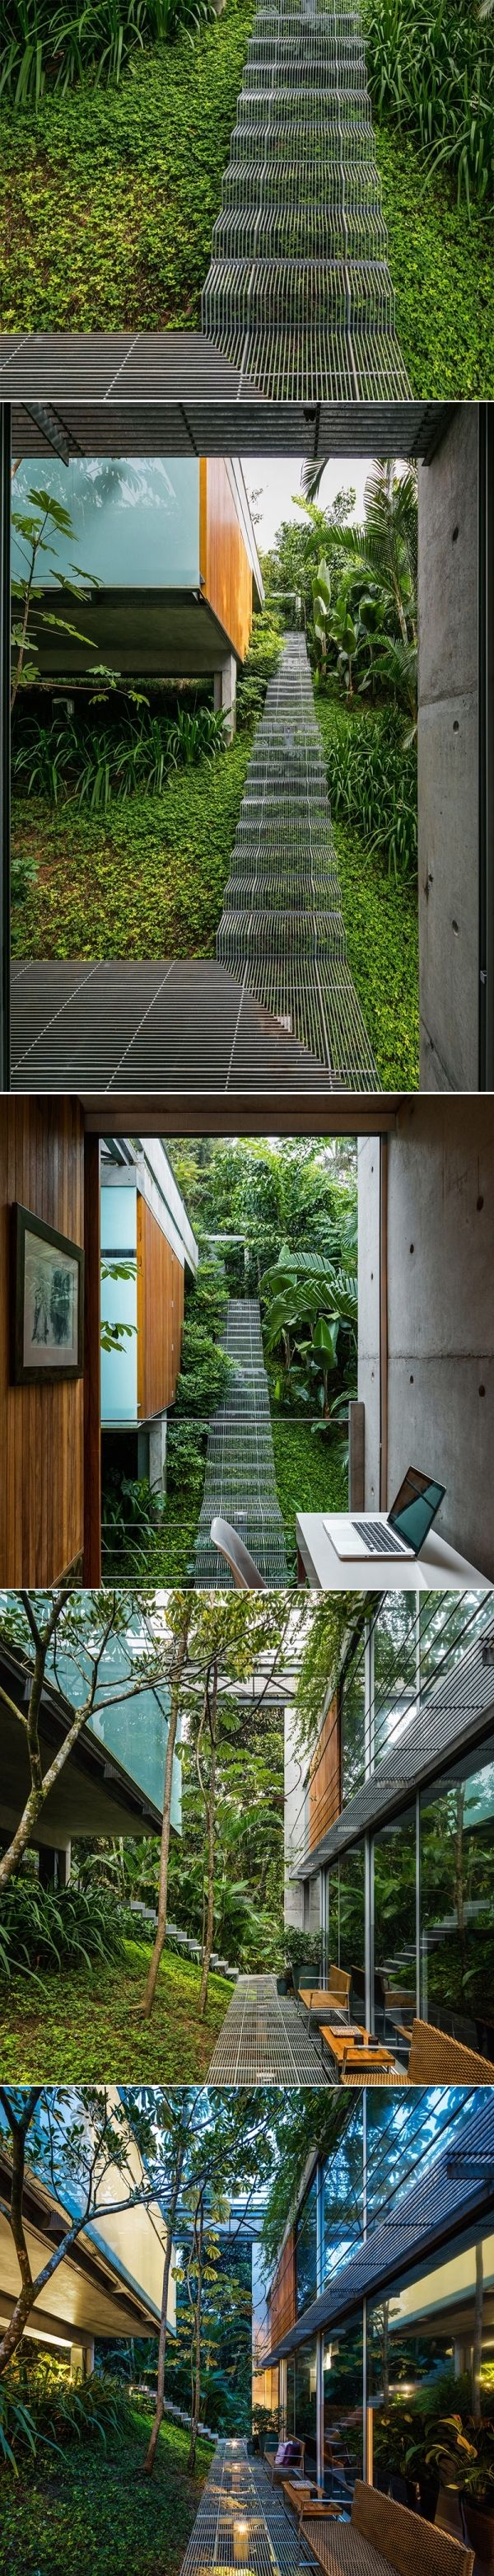 1437 best images about Architect in Training on Pinterest